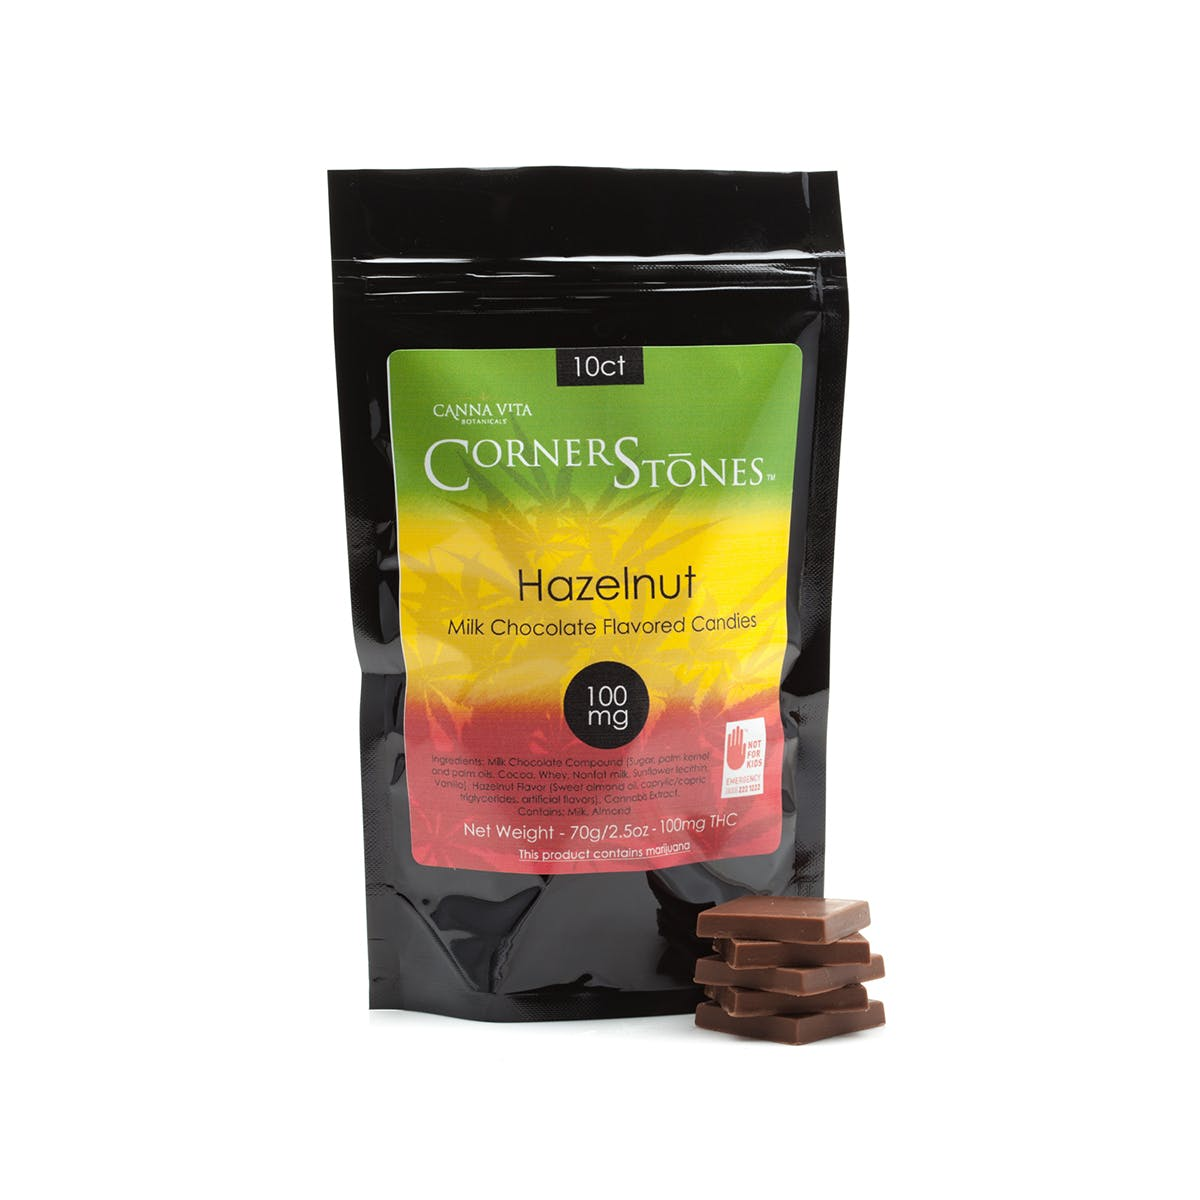 marijuana-dispensaries-greenway-marijuana-in-port-orchard-hazelnut-milk-chocolate-candies-100mg